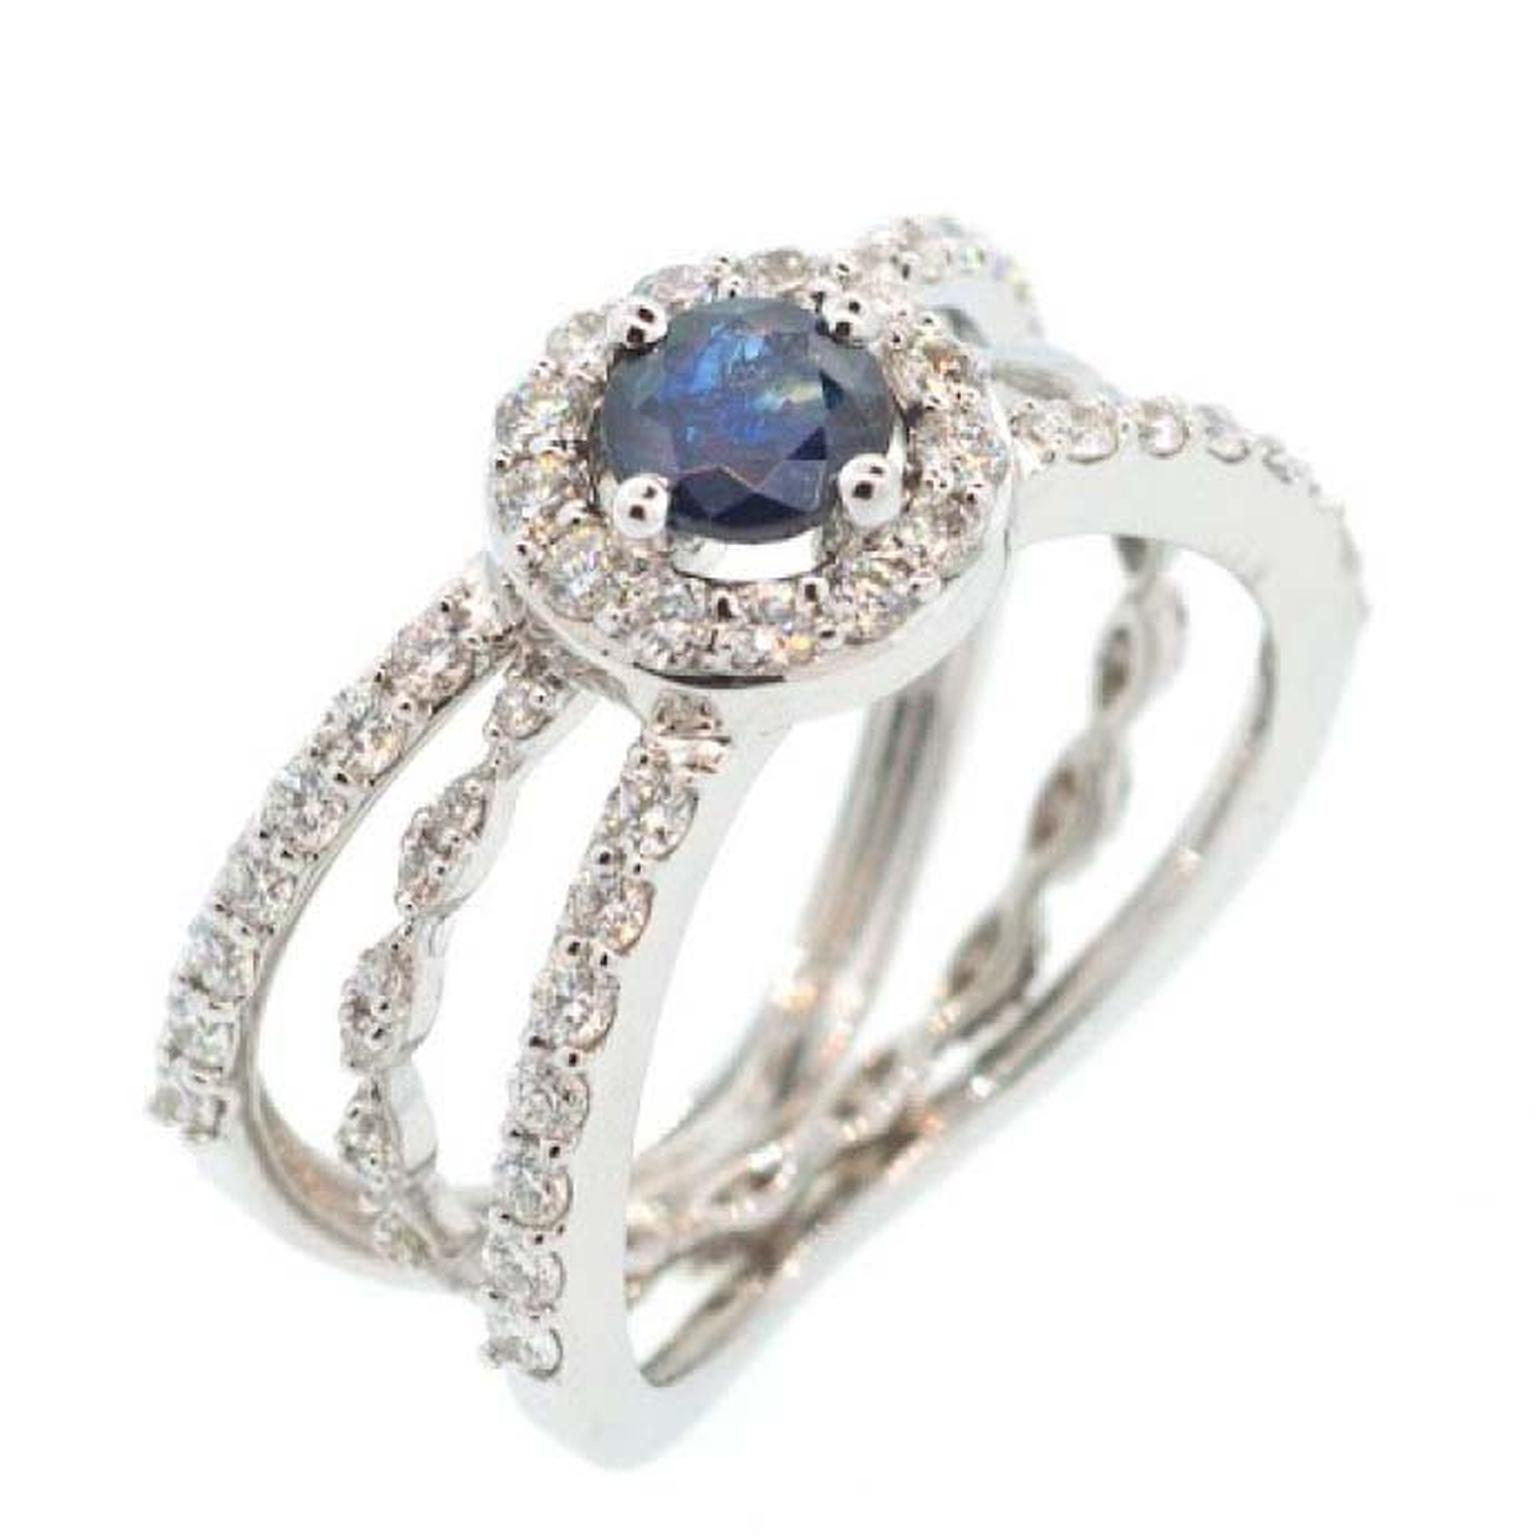 Engagement ring with sapphire and diamonds from Alessa on a model